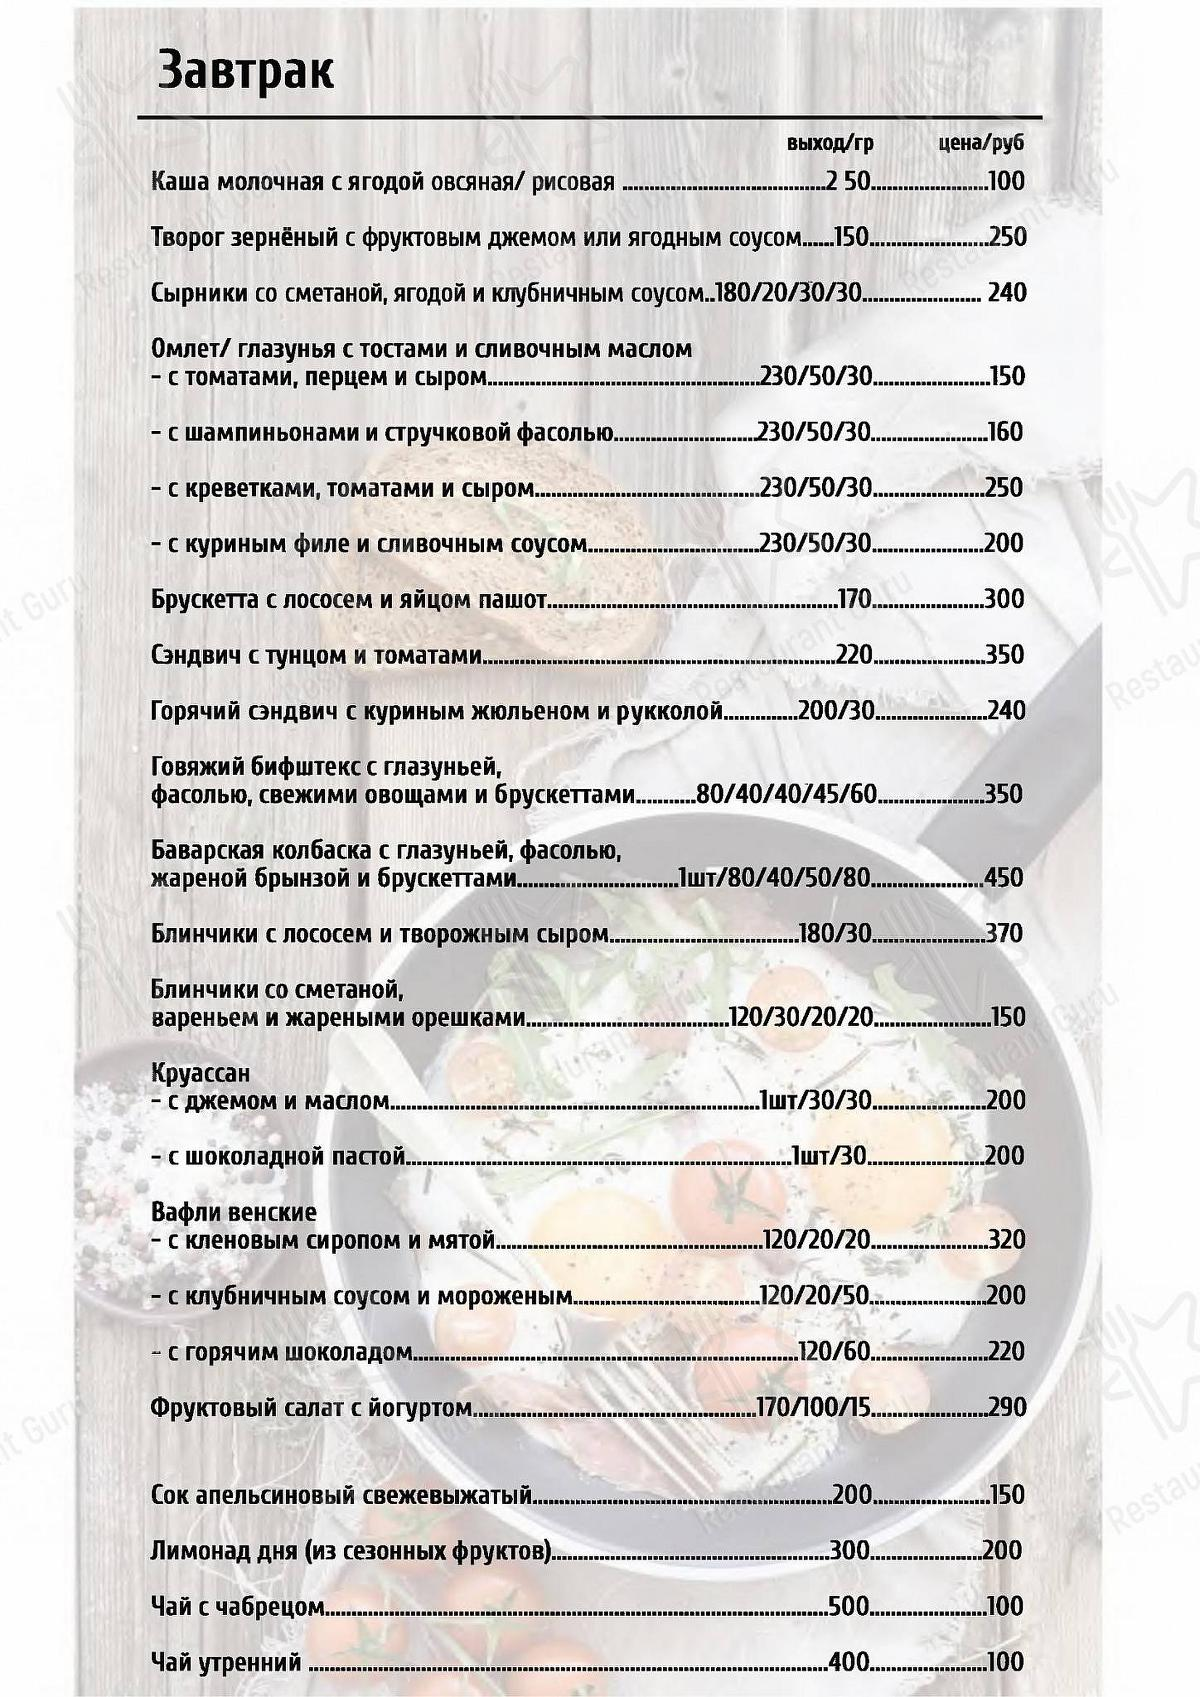 Авиатор menu - dishes and beverages